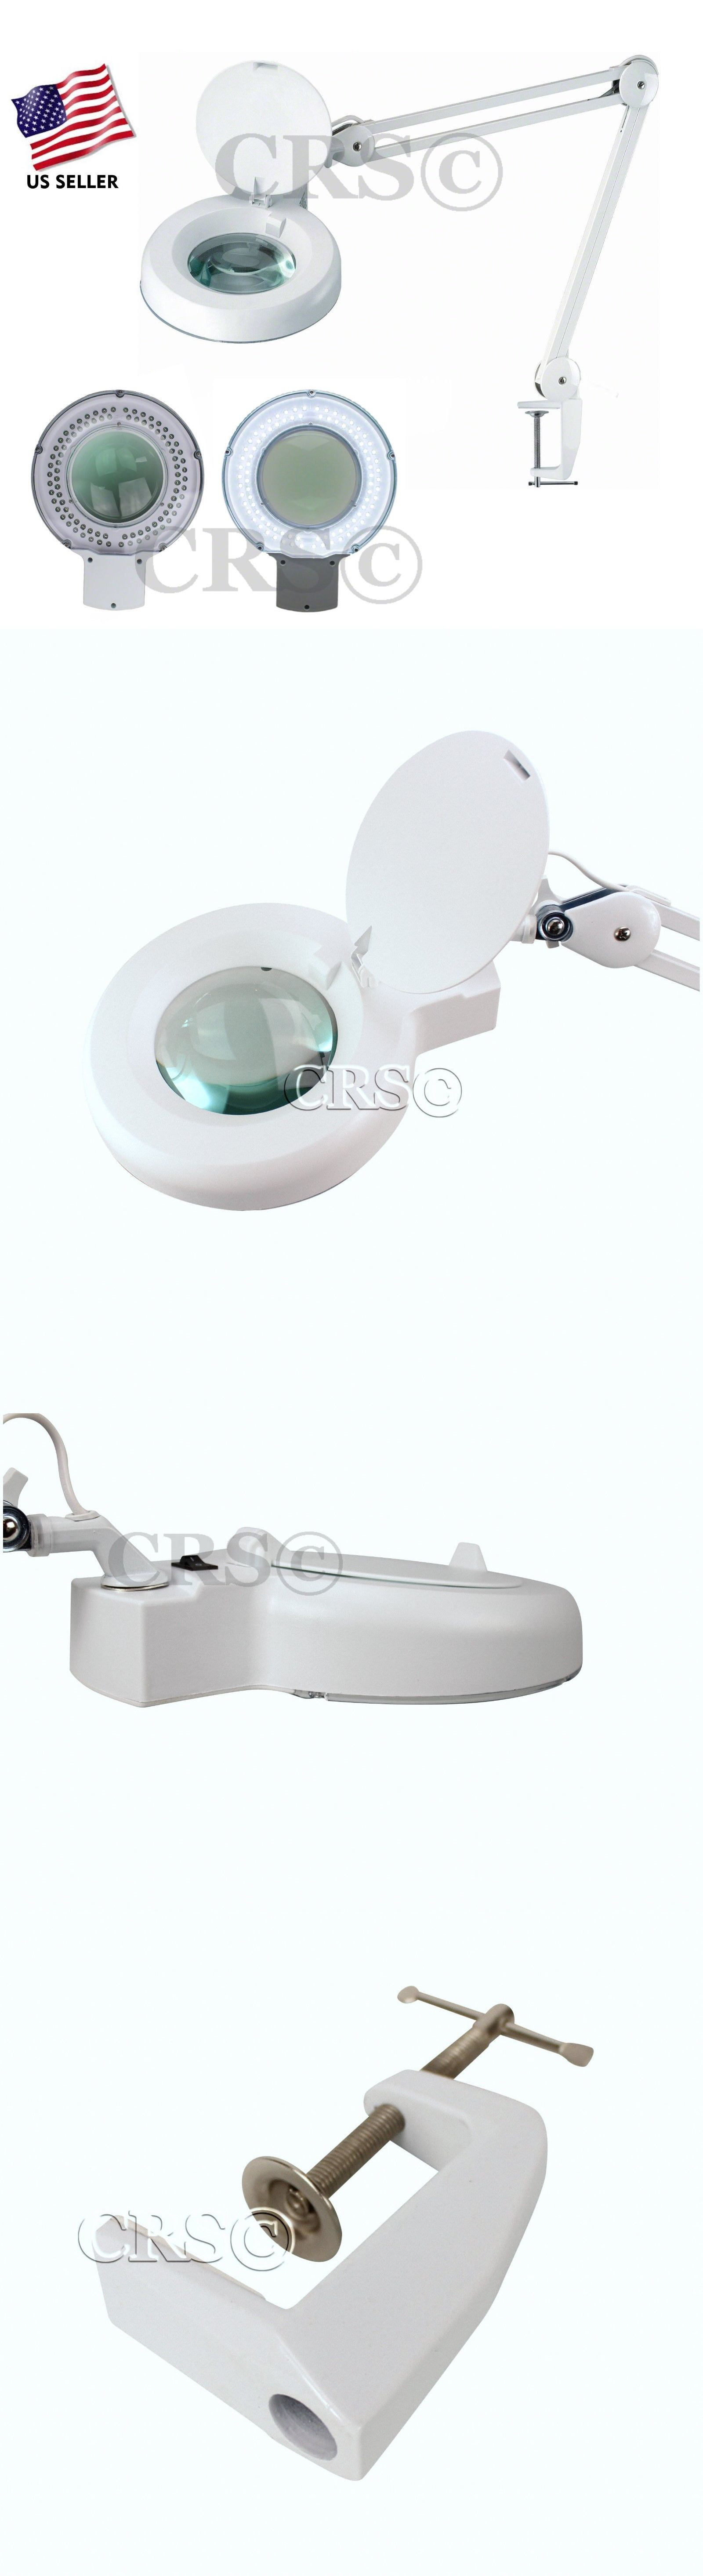 work magnifying view redbank led basic group ourproducts ml applications lamp for all magnifier lamps